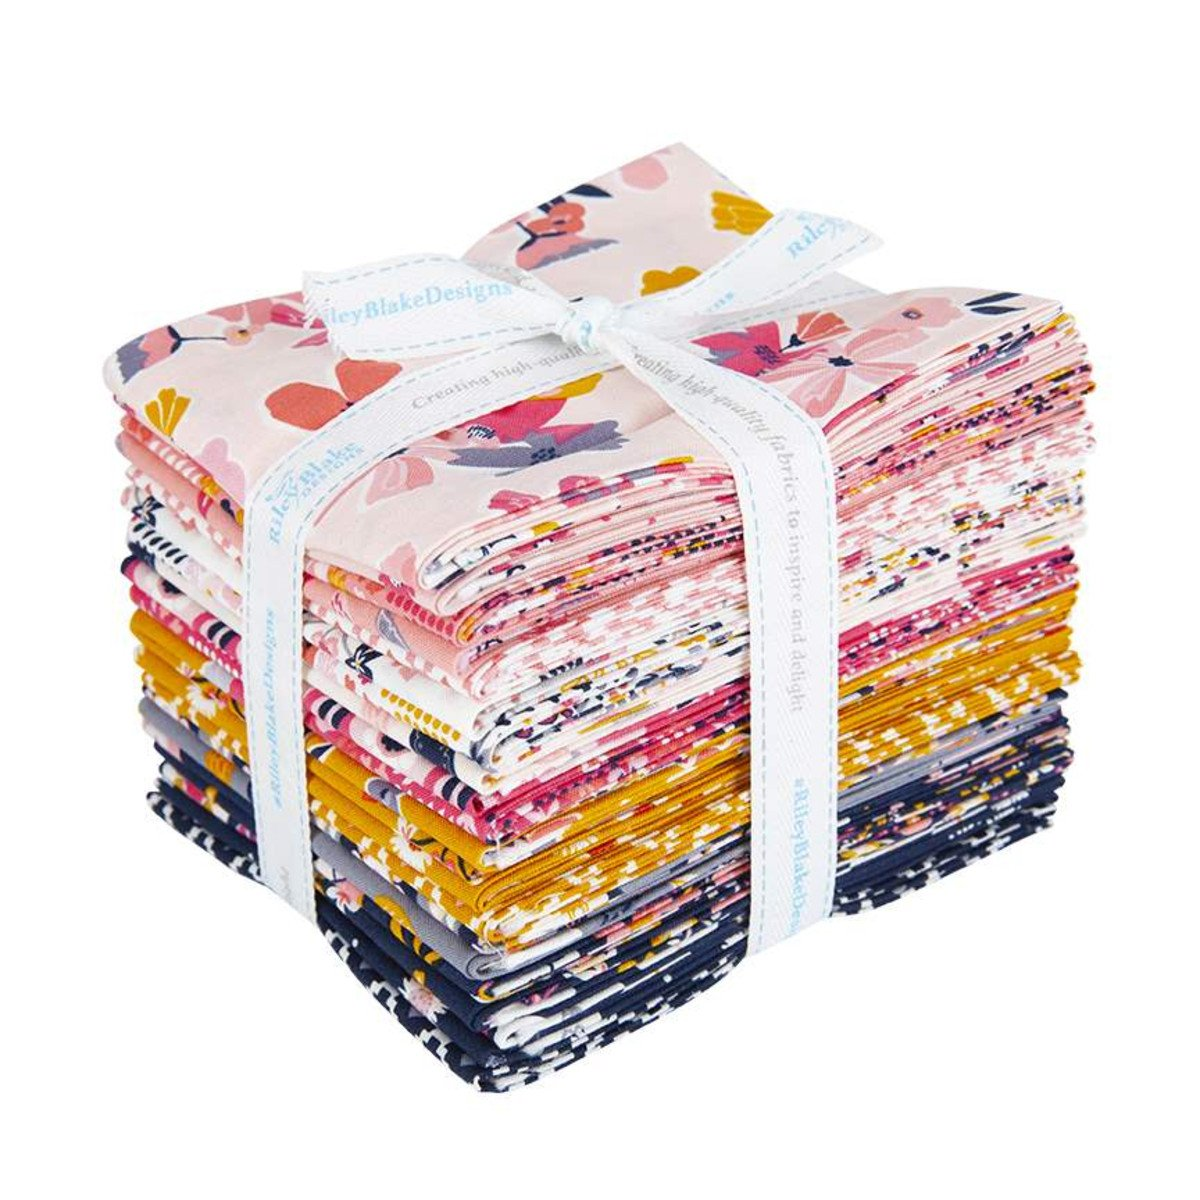 Golden Astor Fat Quarter, 21pcs